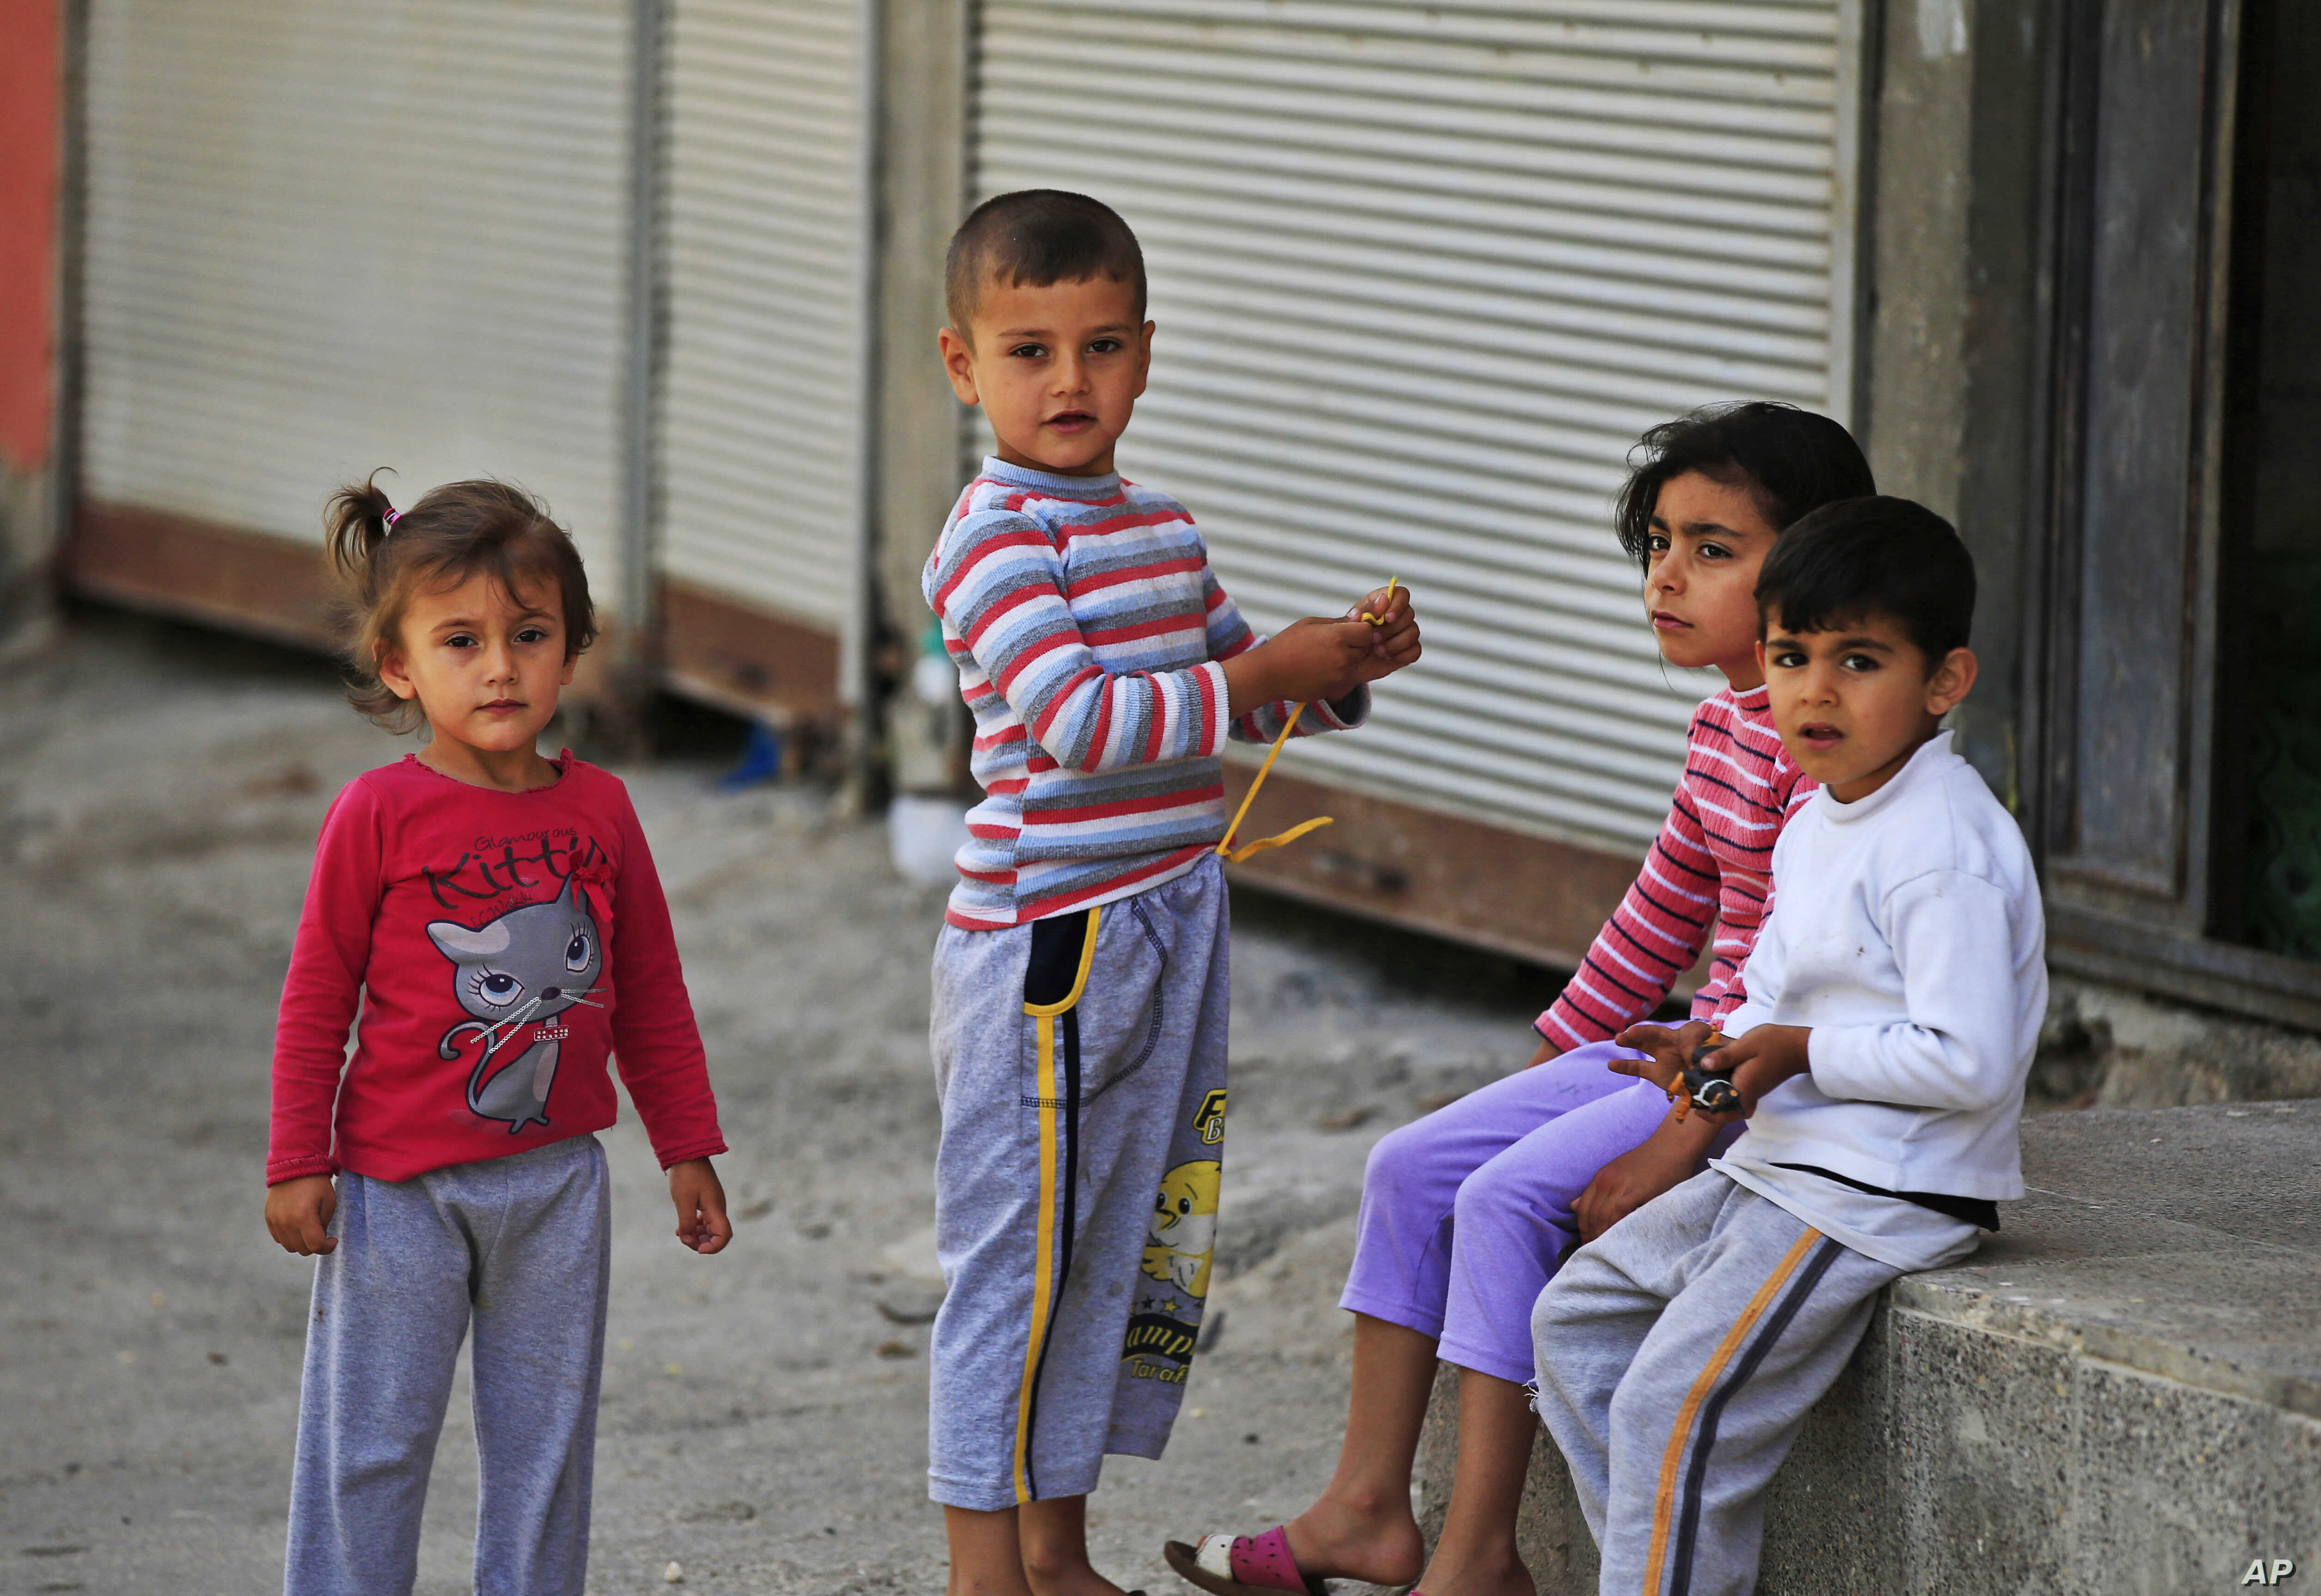 Syrian refugee children pass time in a neighborhood of the city of Gaziantep, southeastern Turkey on May 16, 2016. (AP)